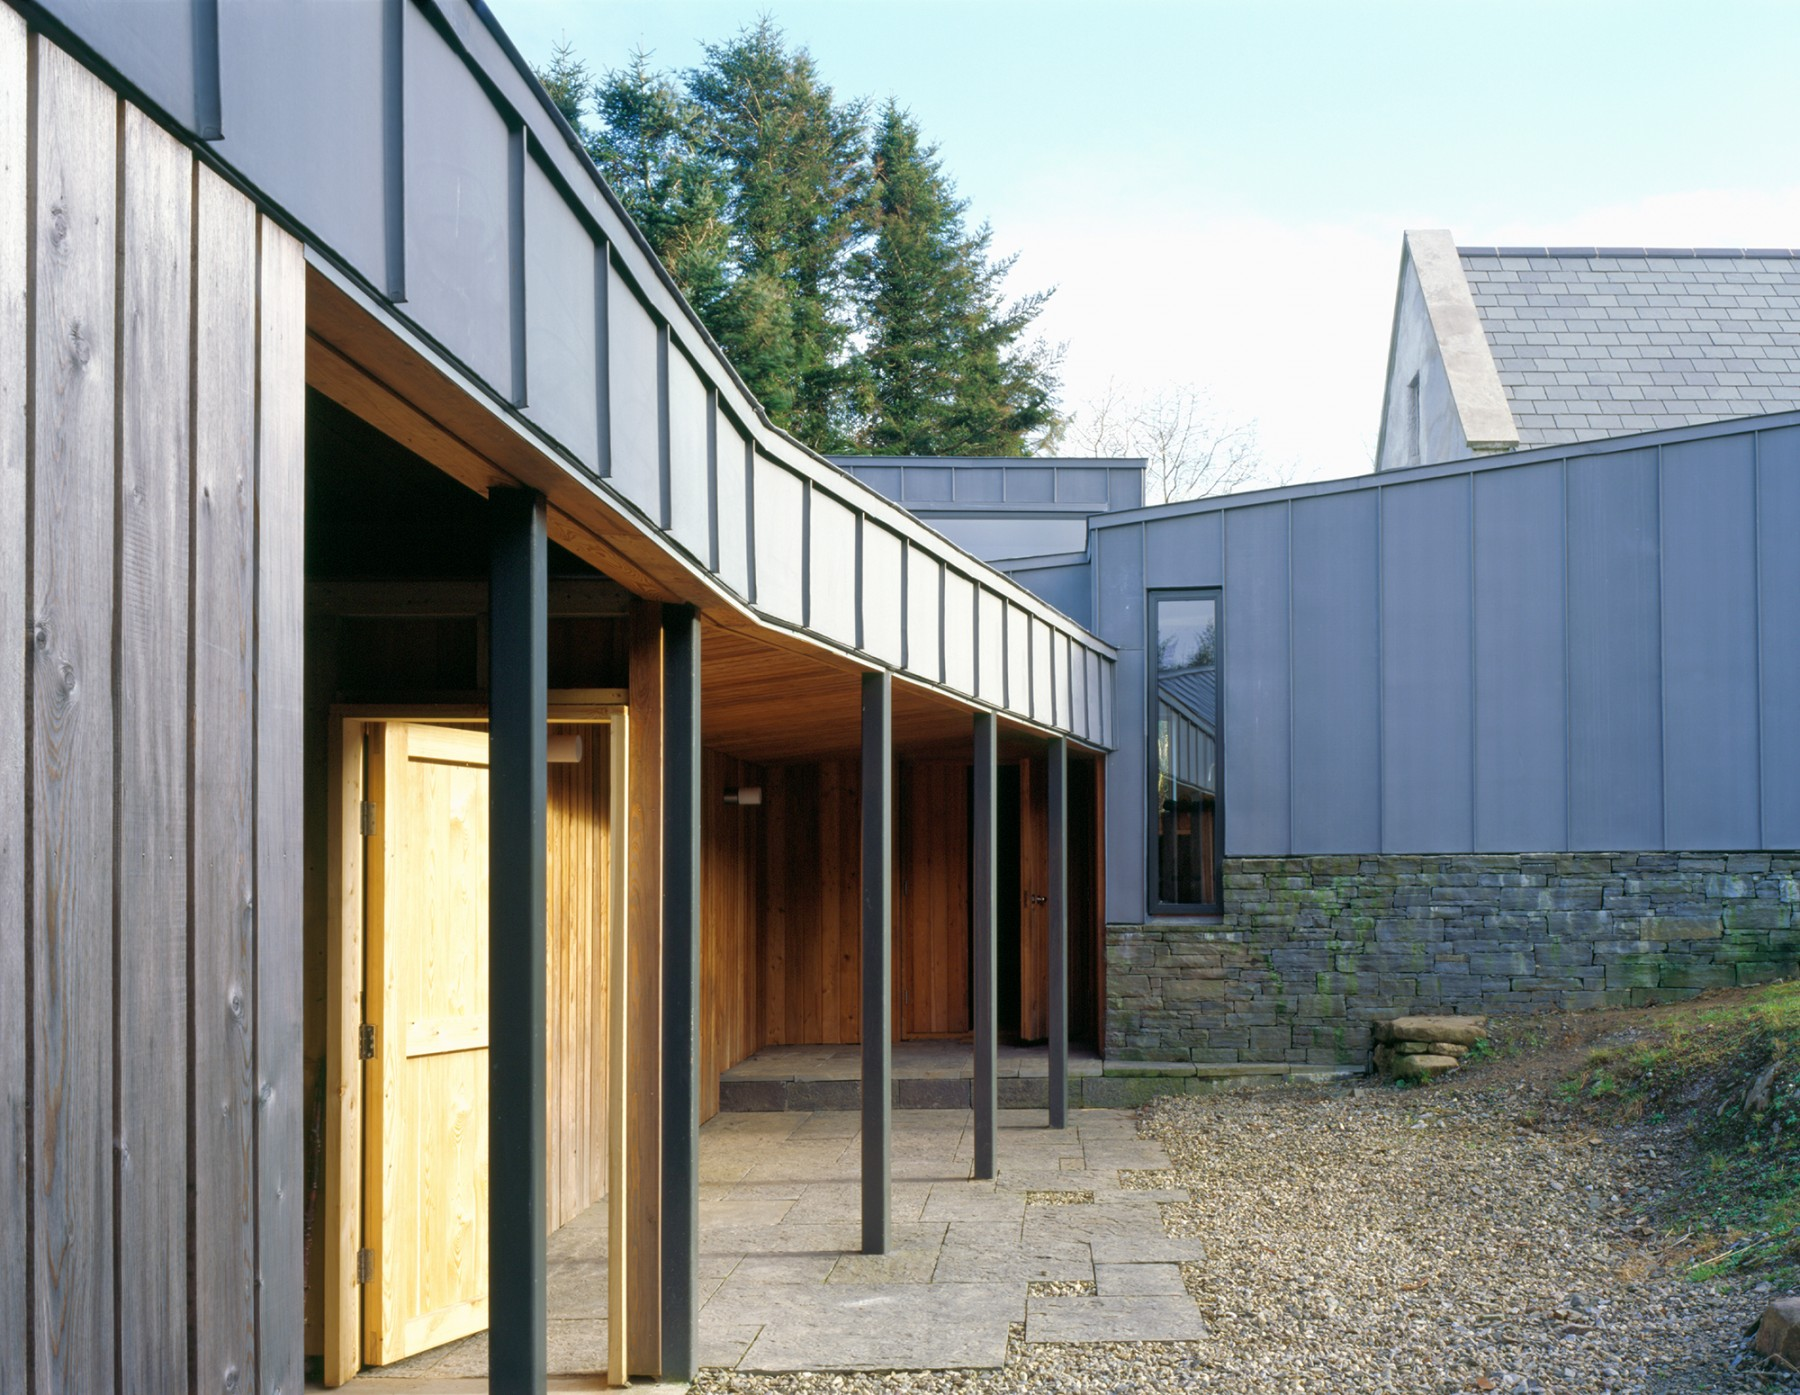 FaHa-Farm-house-barn-County-Clare-Ireland-residential-home-rural-timber-zinc-Jamie-Fobert-Architects-10